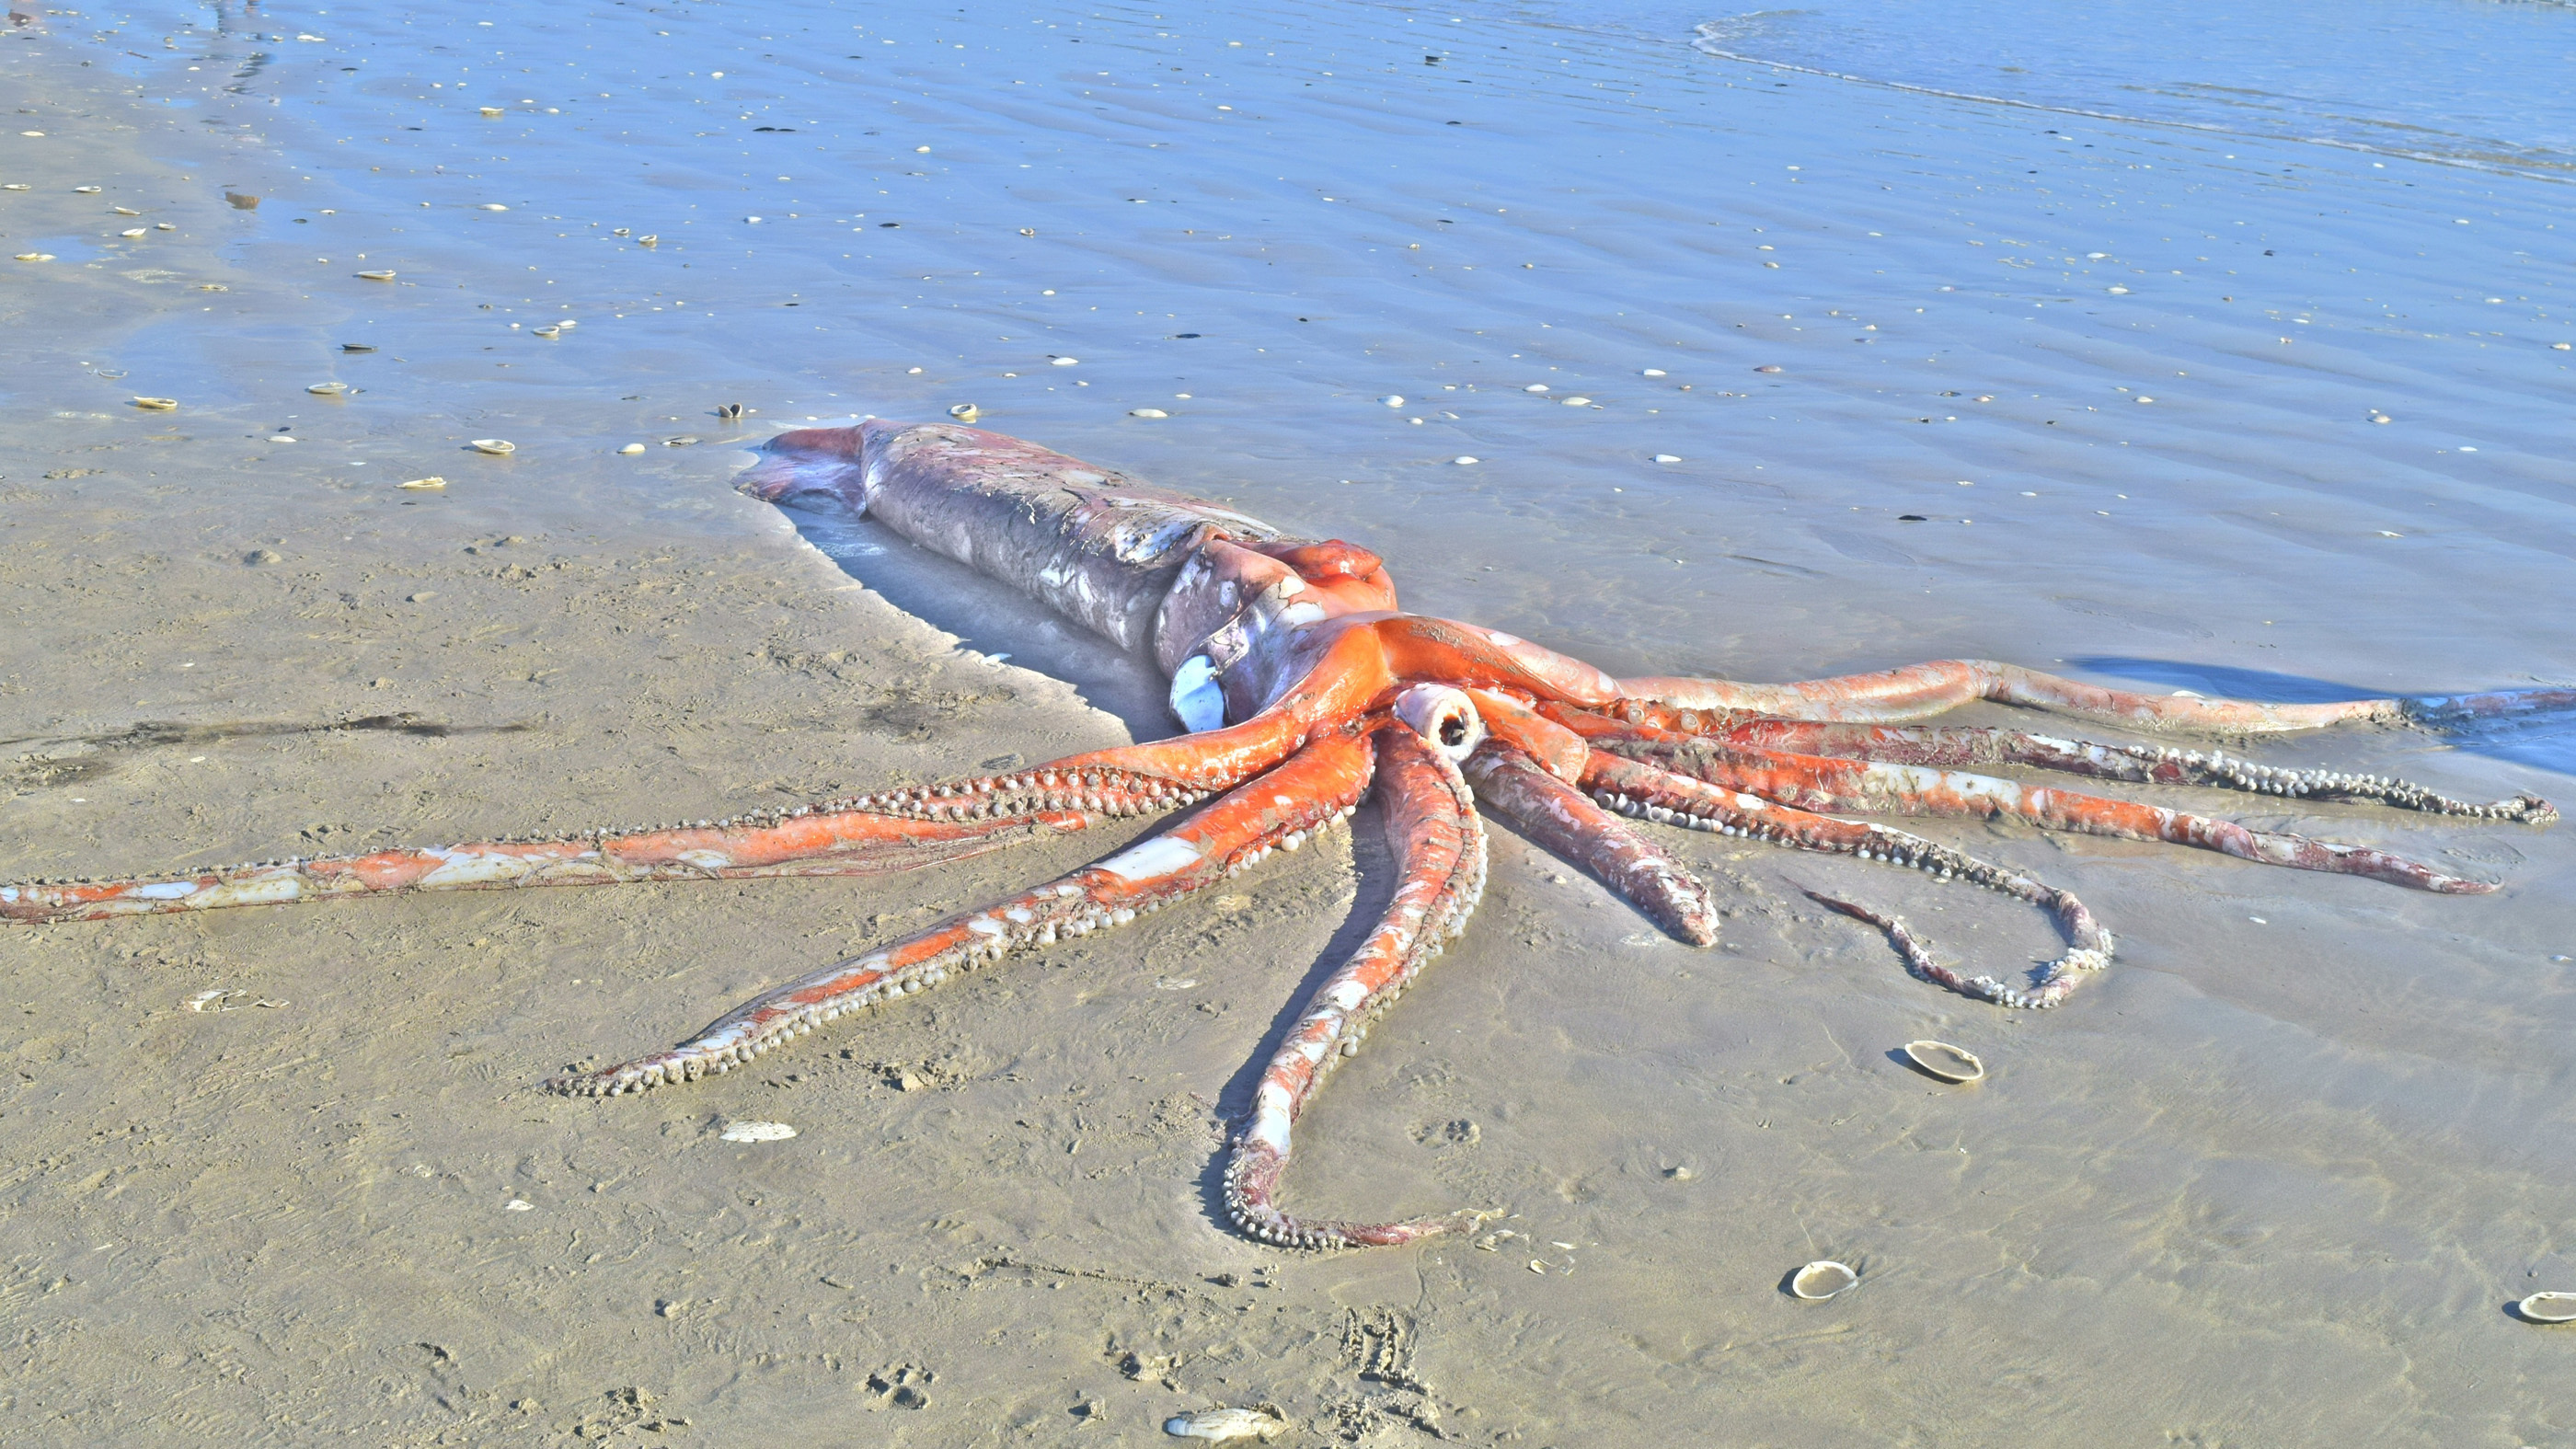 Stunningly intact giant squid washes ashore in South Africa | Live Science